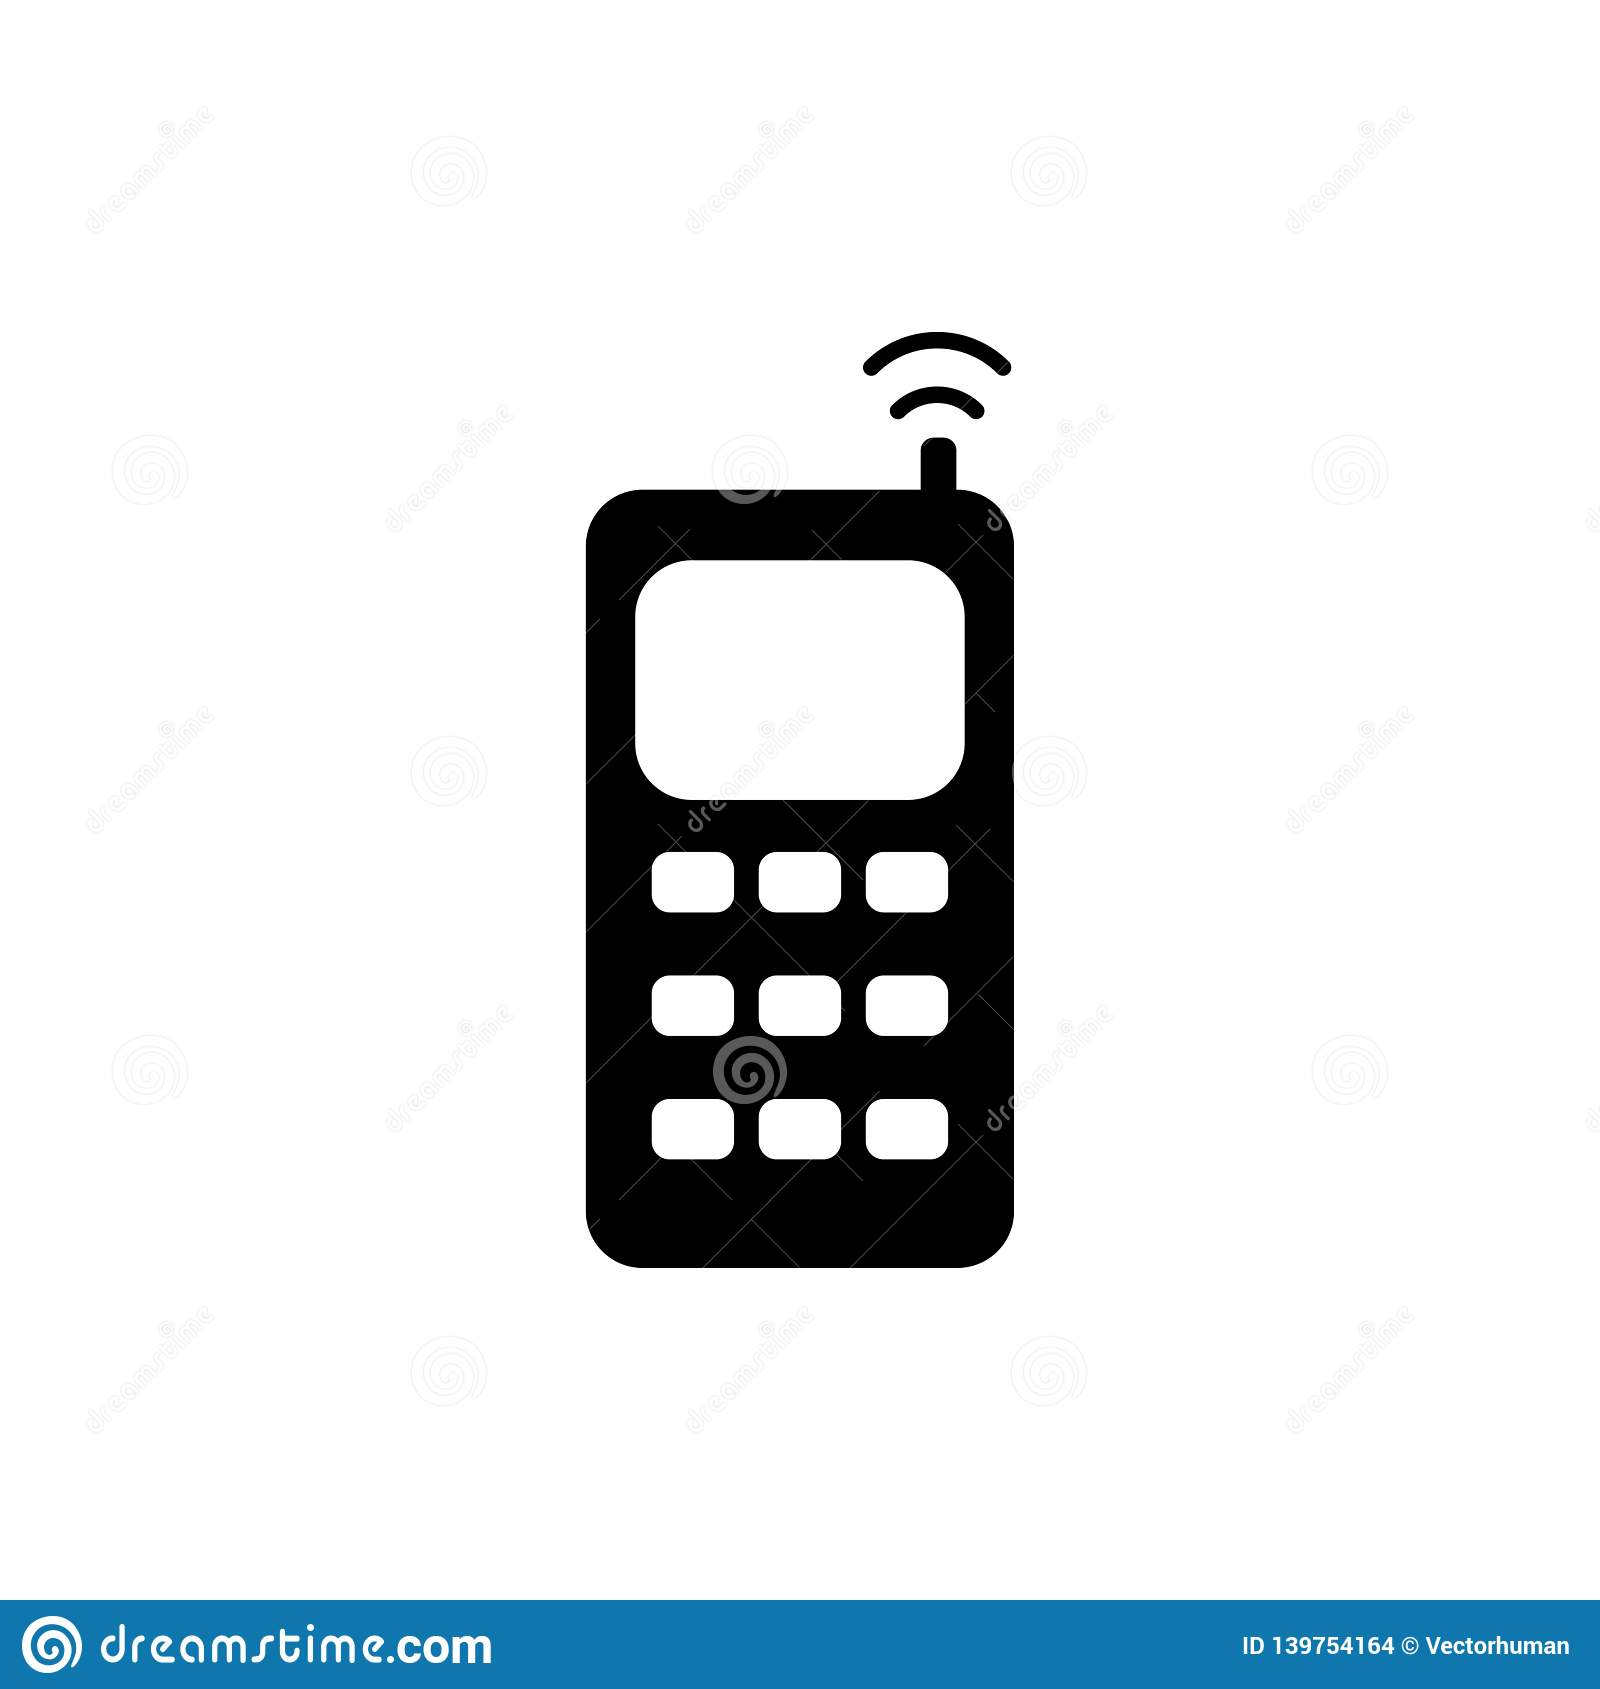 Cell Phone Icon >> Cell Phone Icon Stock Vector Illustration Of Illustration